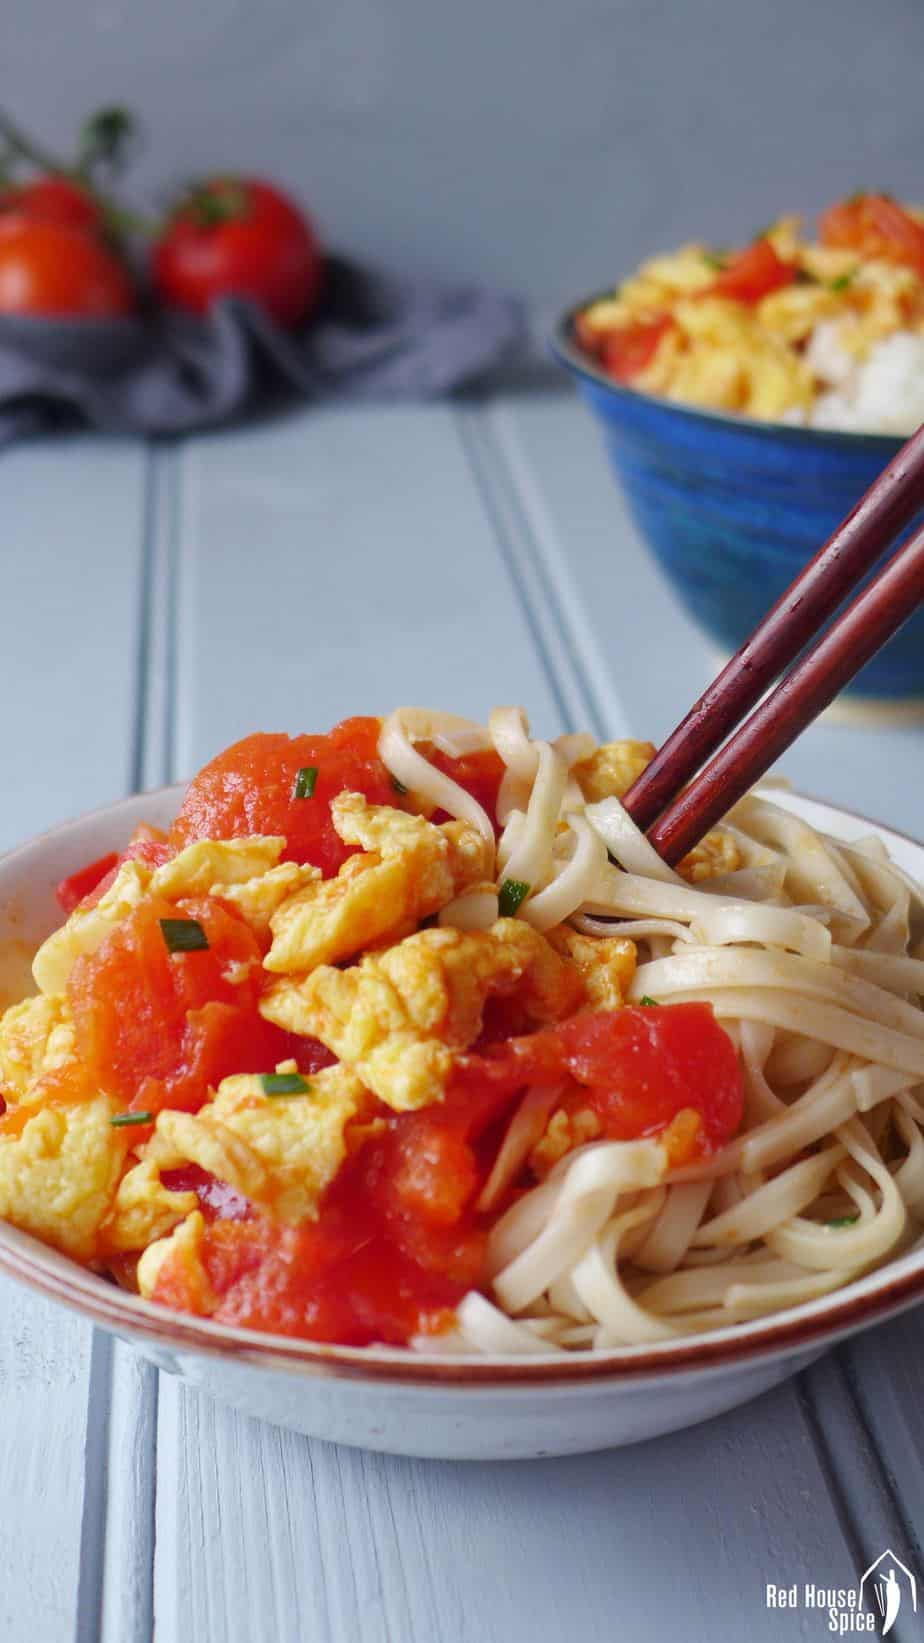 Tomato and egg stir-fry over a bowl of noodles.